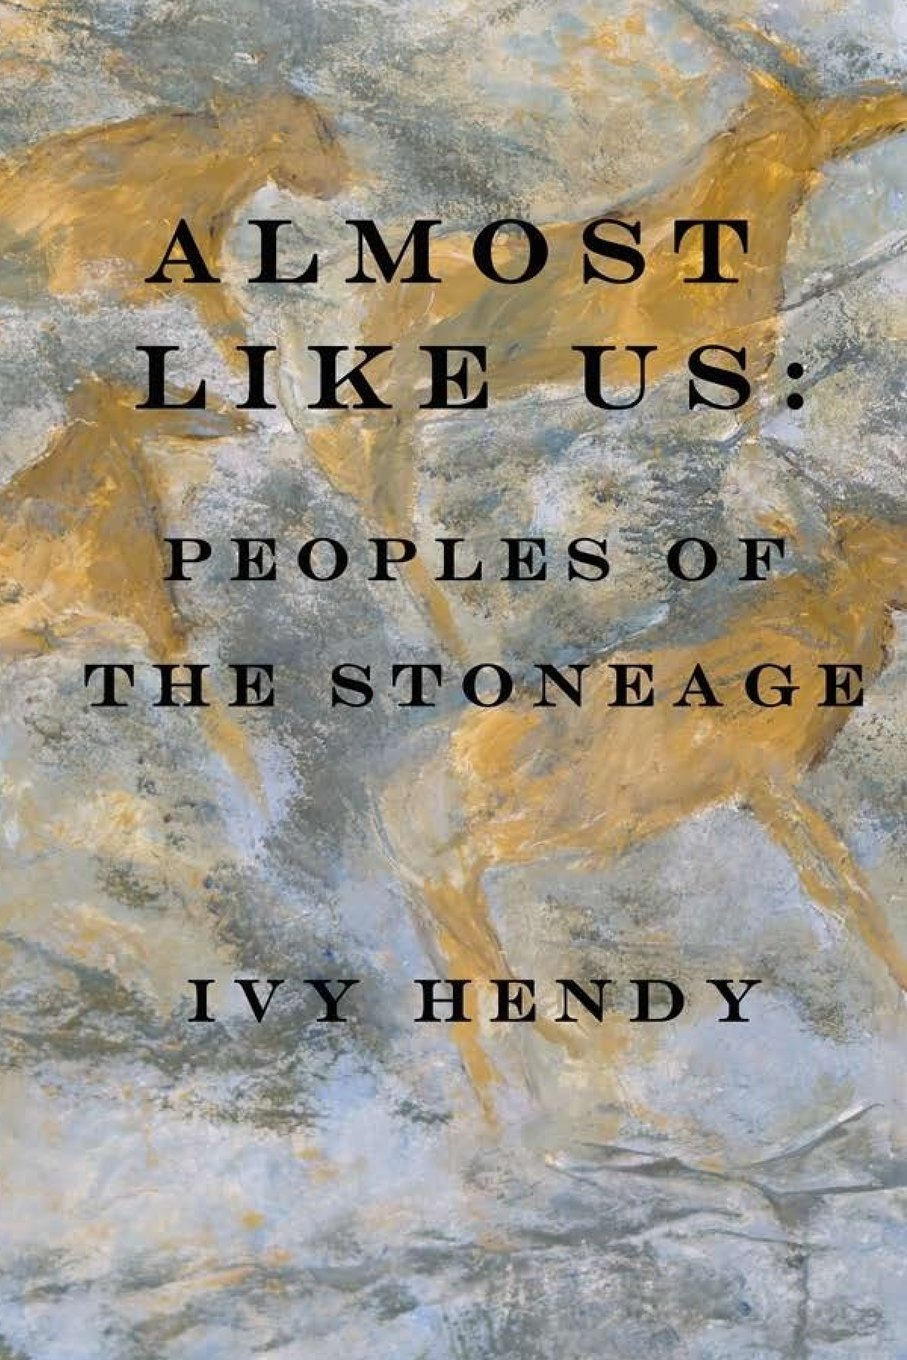 Almost like Us:Peoples of the Stone Age: Ivy Hendy